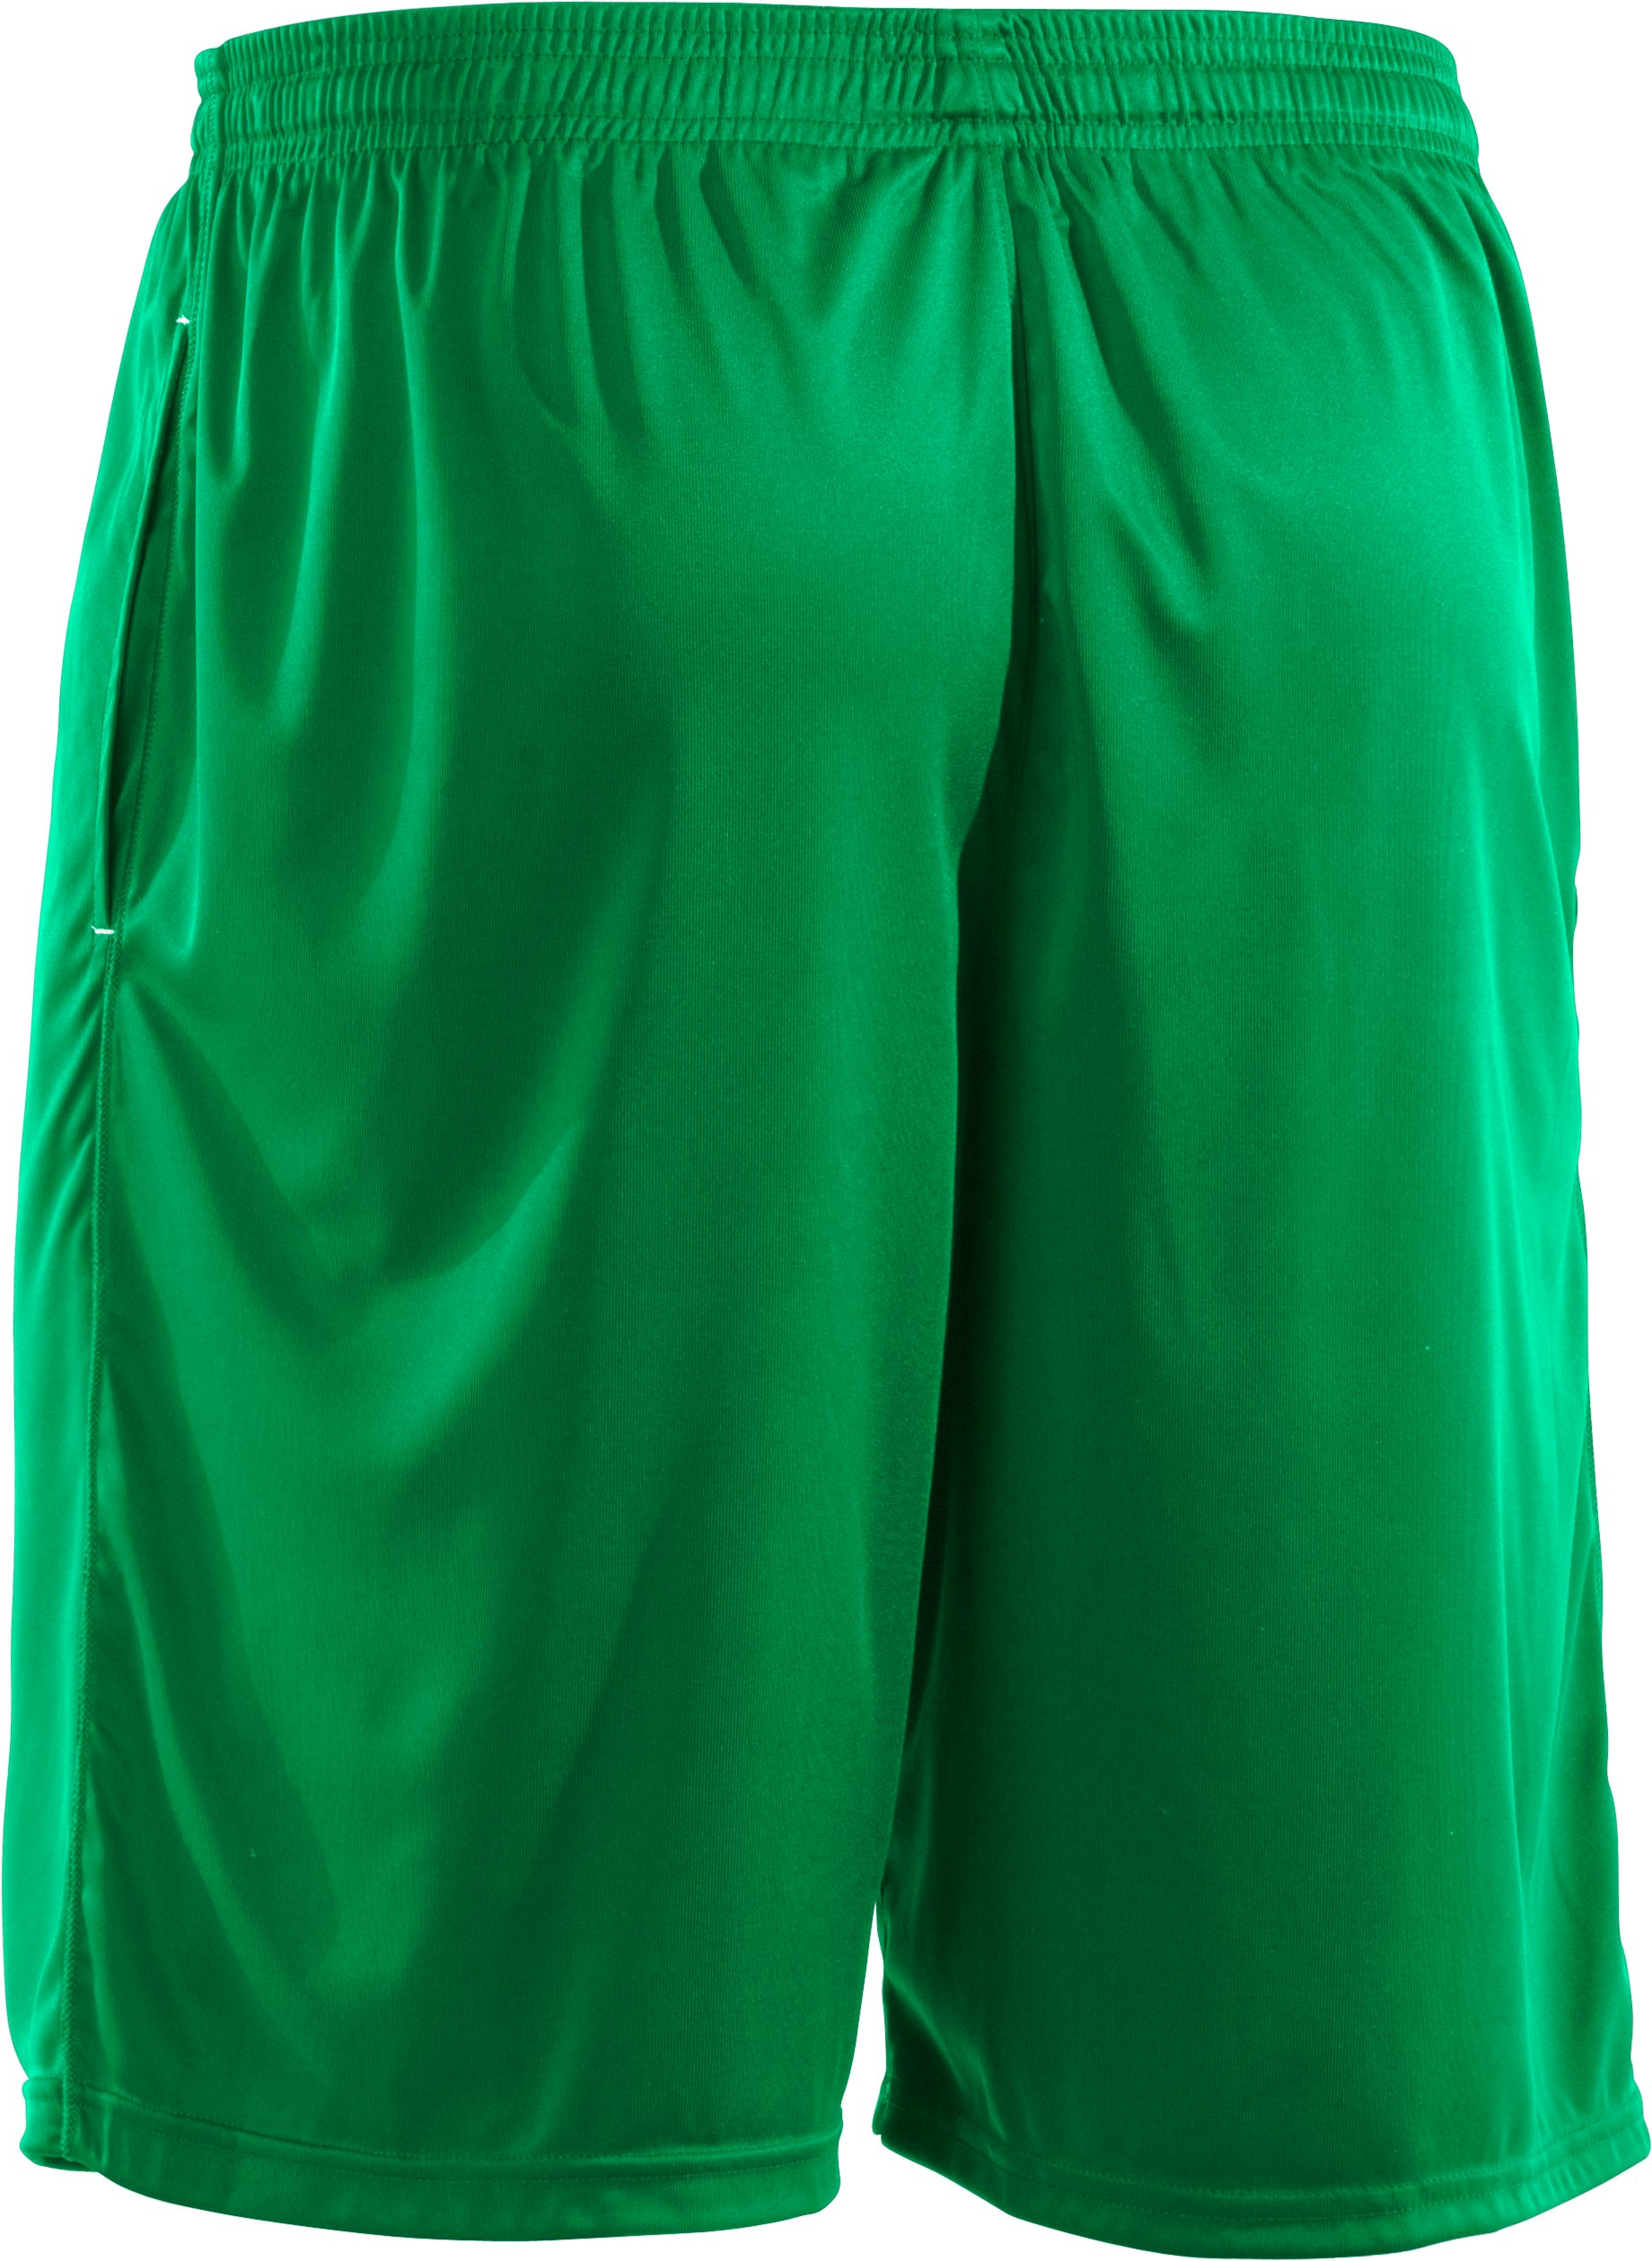 Men's UA Micro Solid Shorts, ASTRO GREEN, undefined